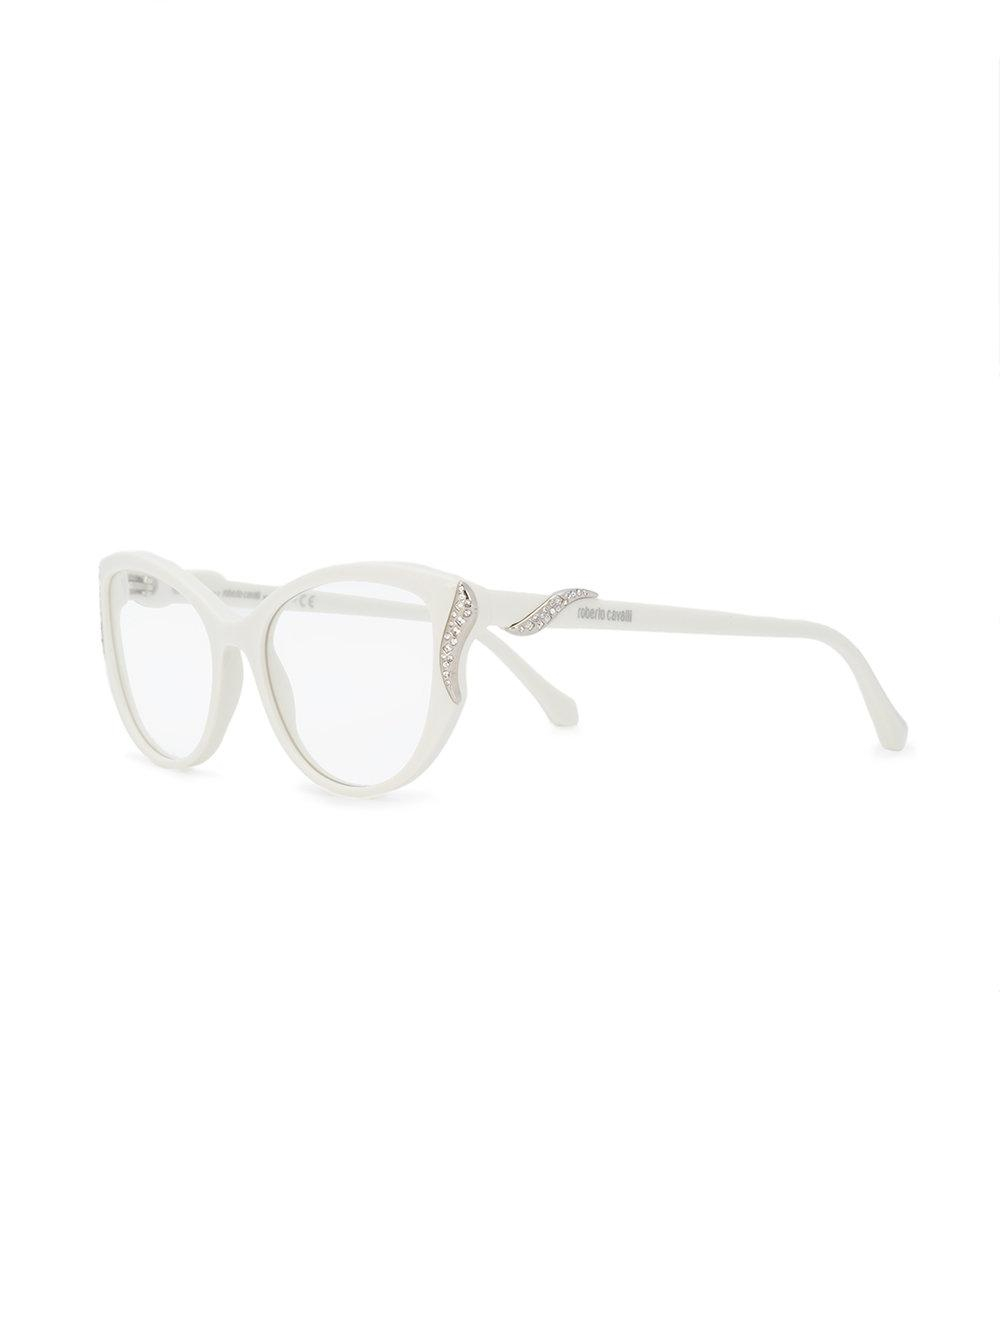 Roberto Cavalli Fosciana cat-eye frame glasses Big Sale For Sale Authentic Online High Quality Cheap Price Rt0EVbdLP